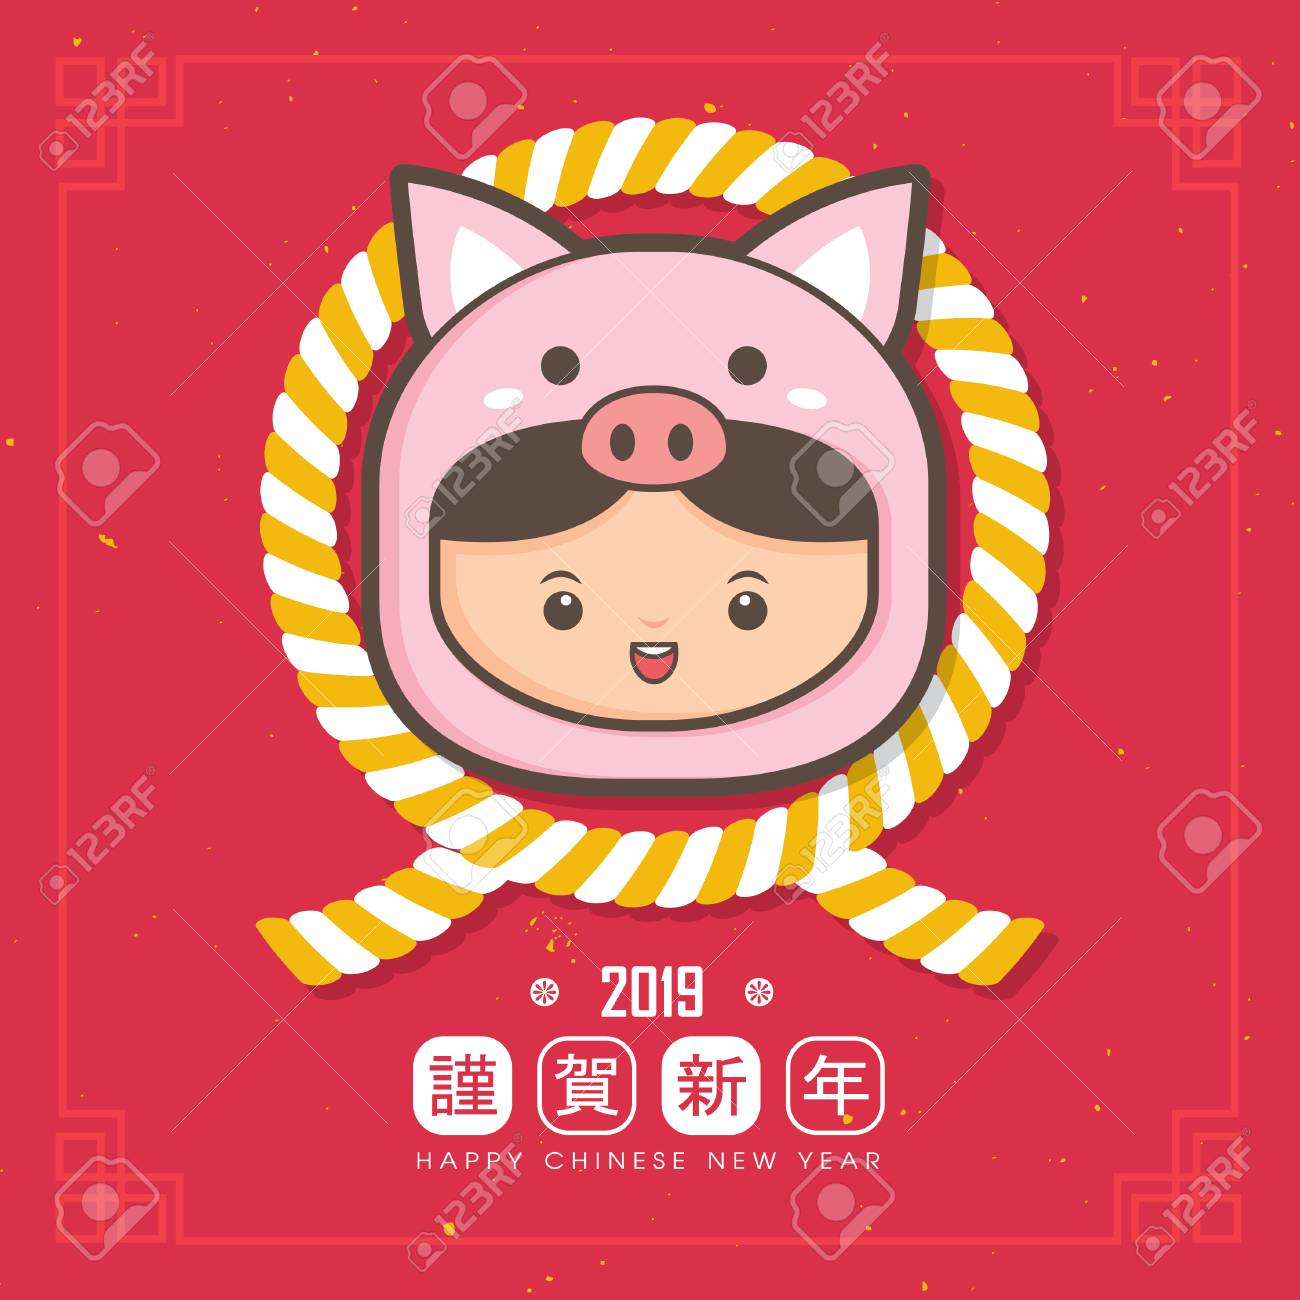 2019 chinese new year greeting card template cute children wearing a piggy costume